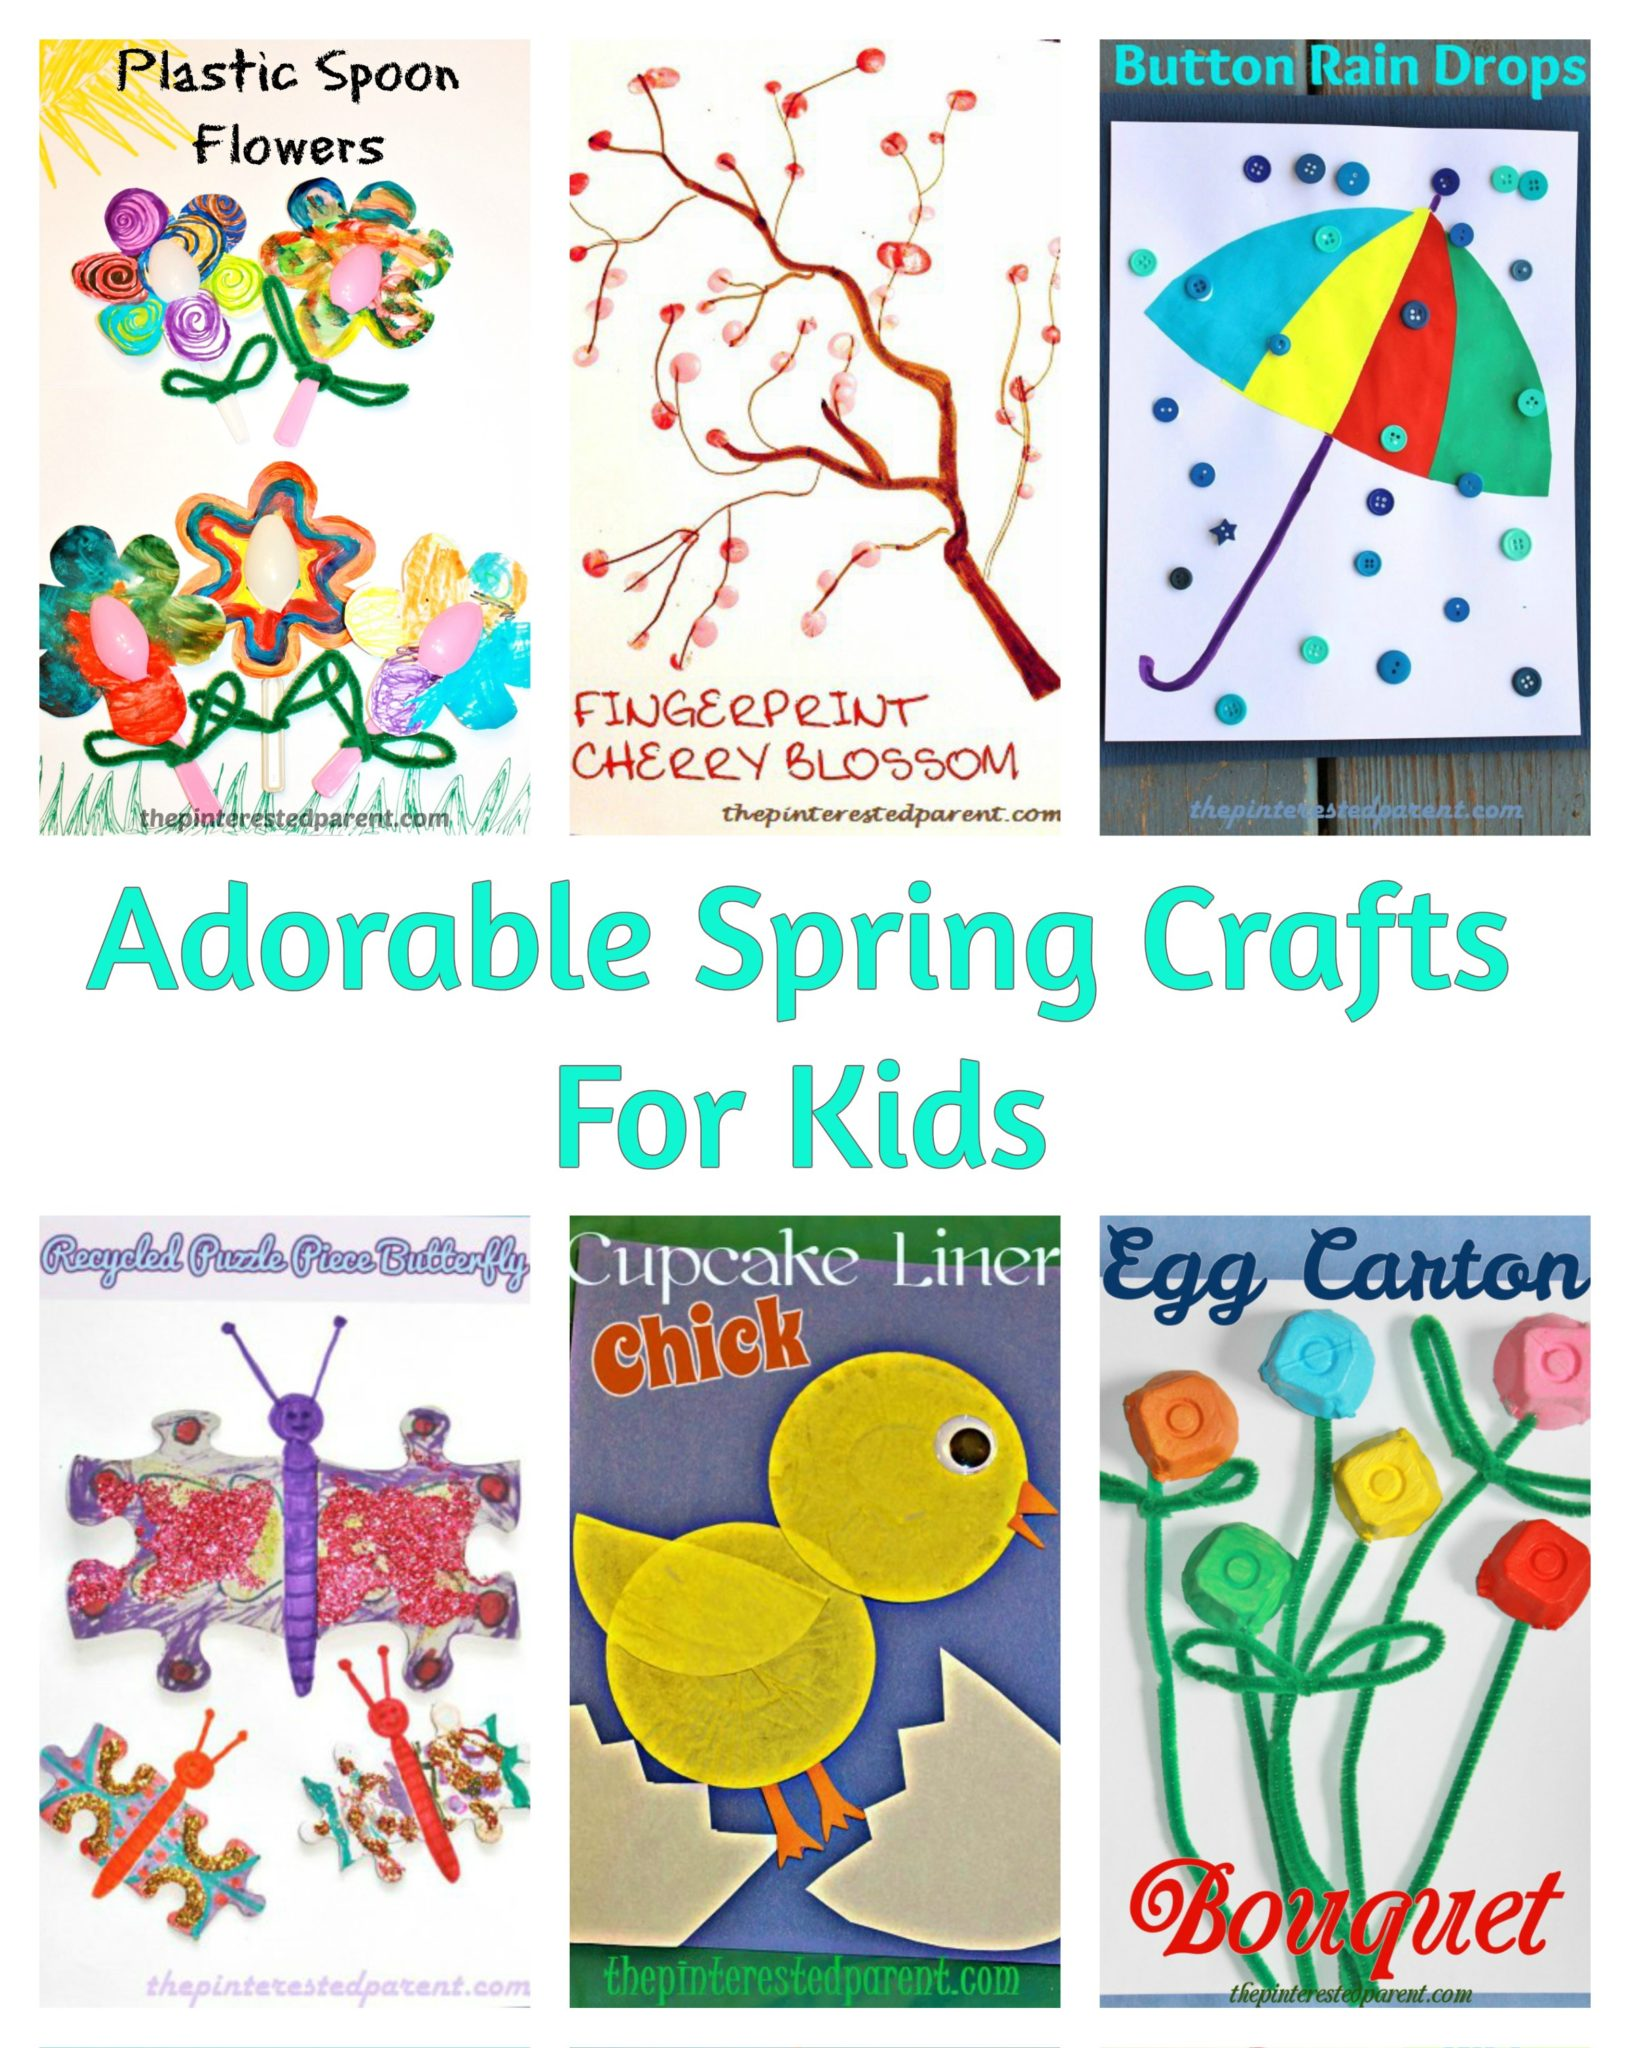 Cute Simple Spring Crafts For Kids The Pinterested Parent